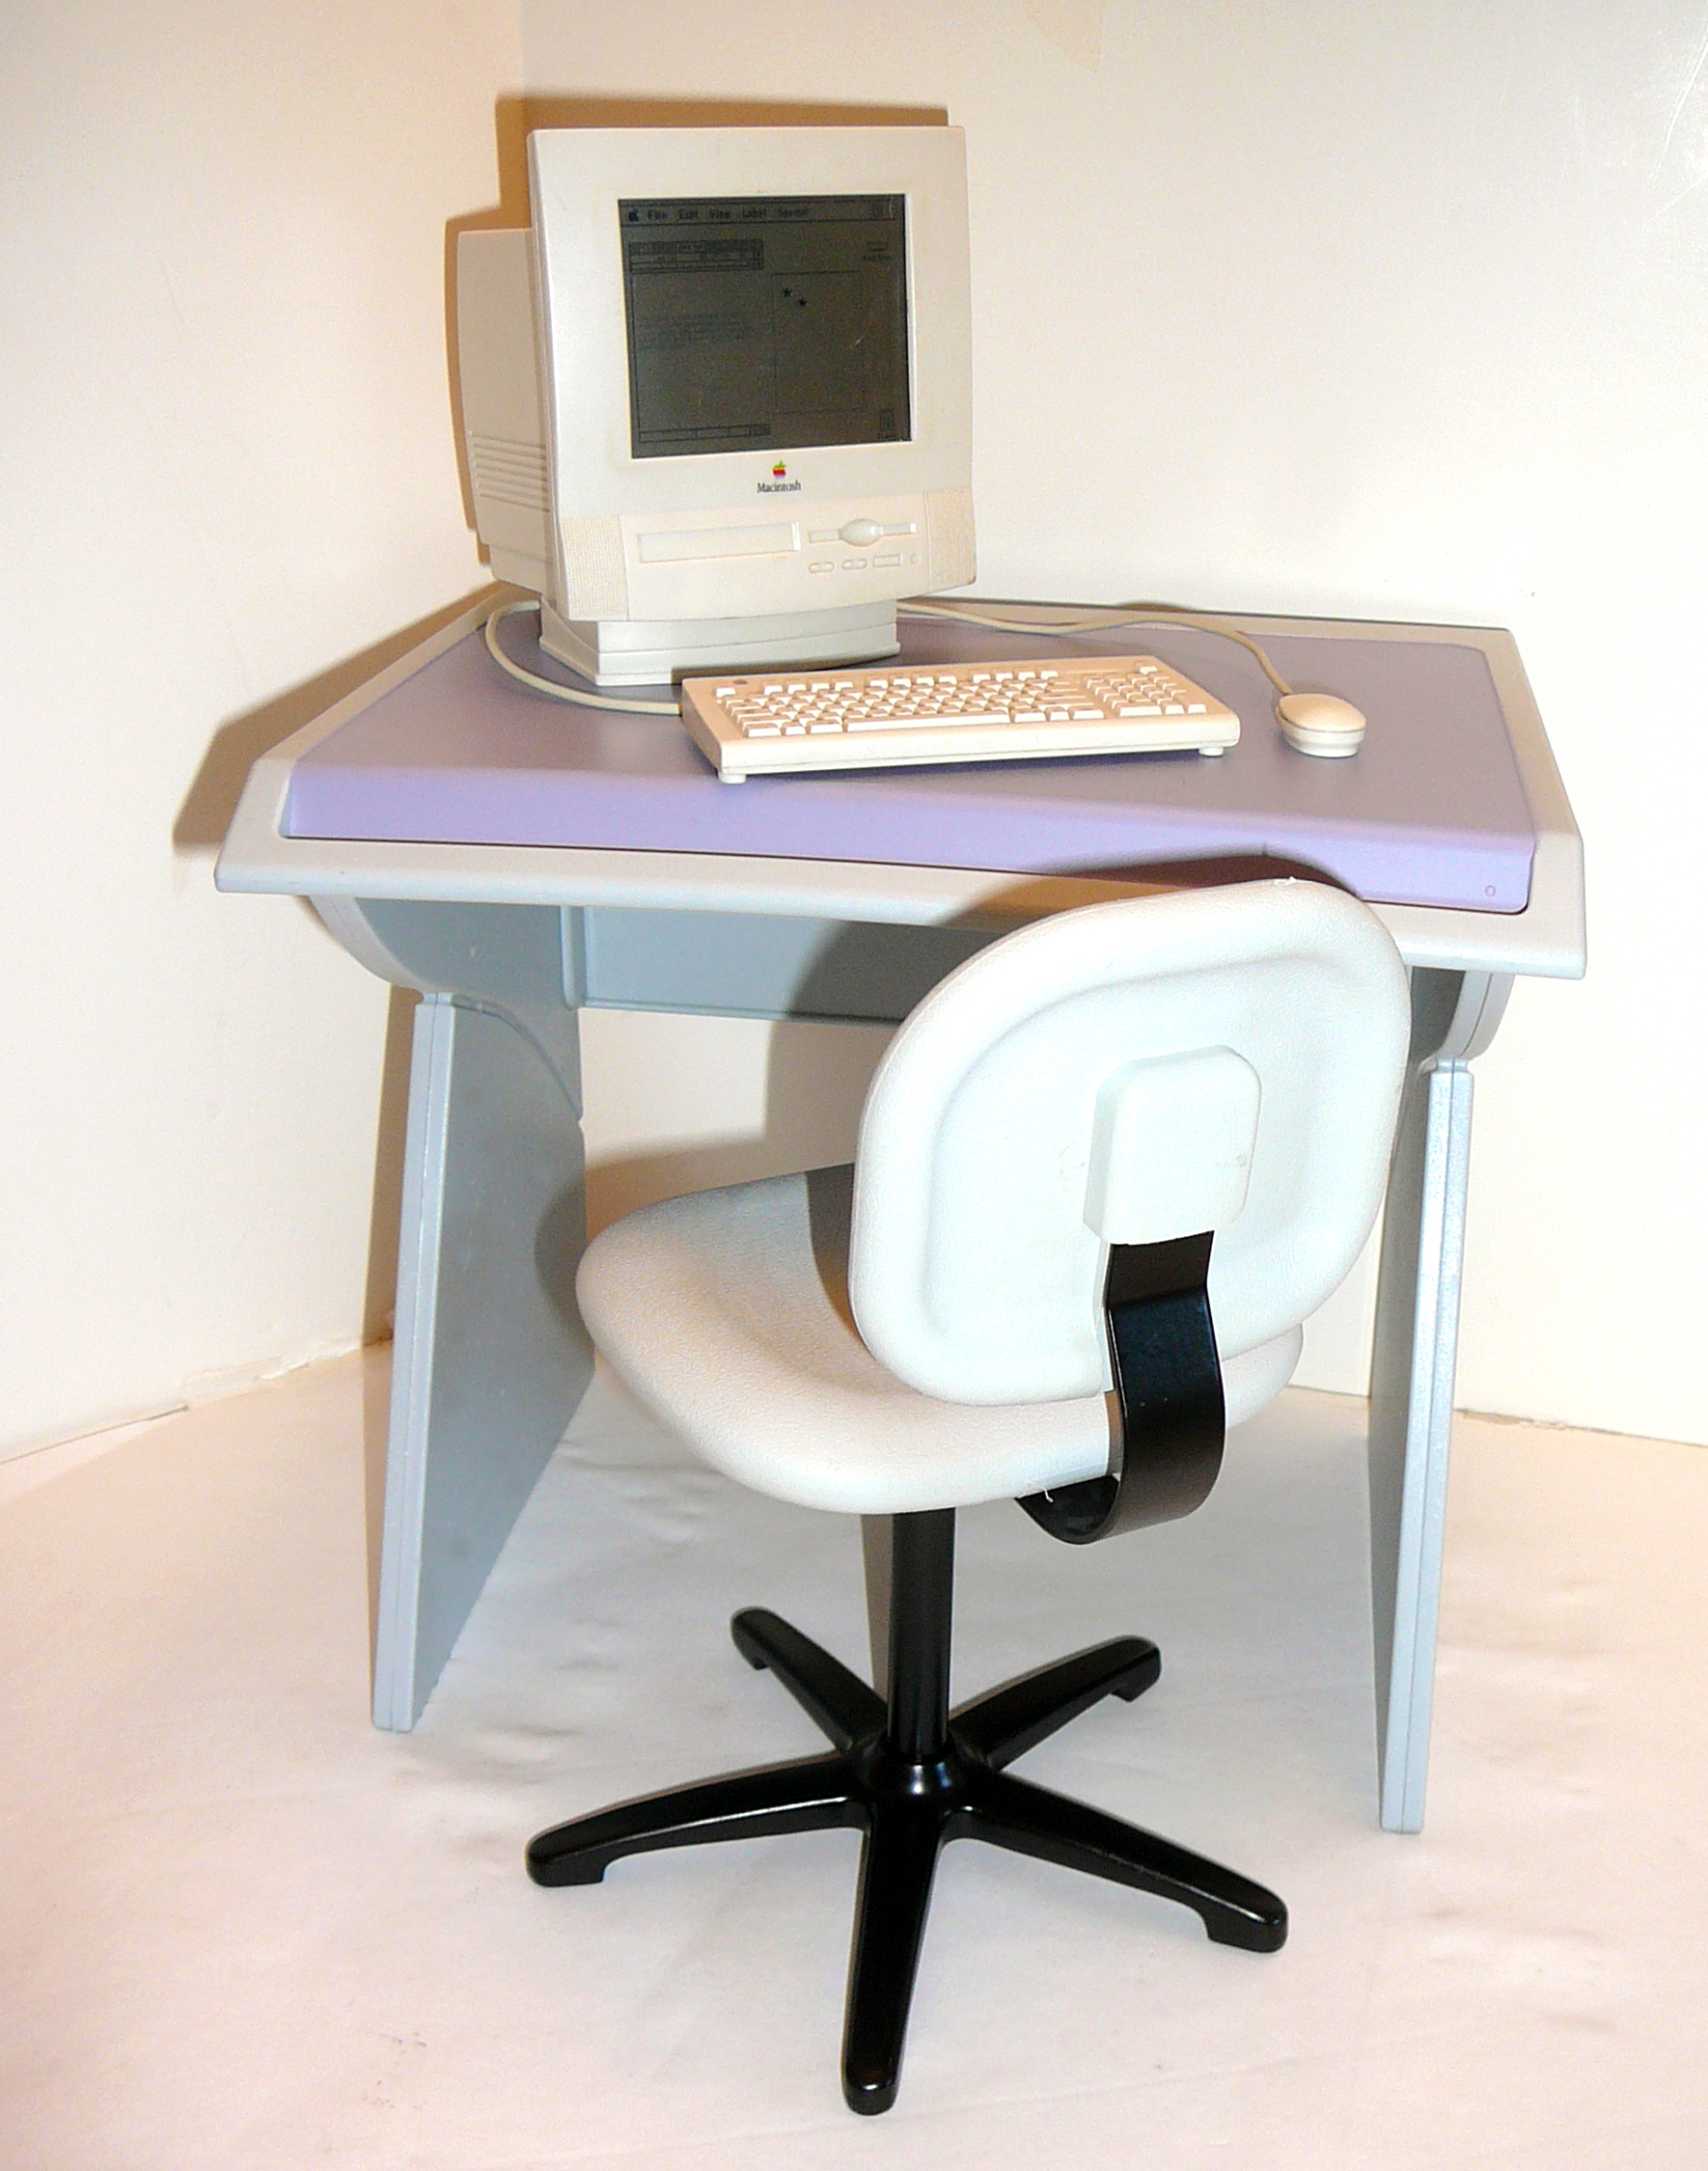 Miniature Powermac 5400 with desk and chair